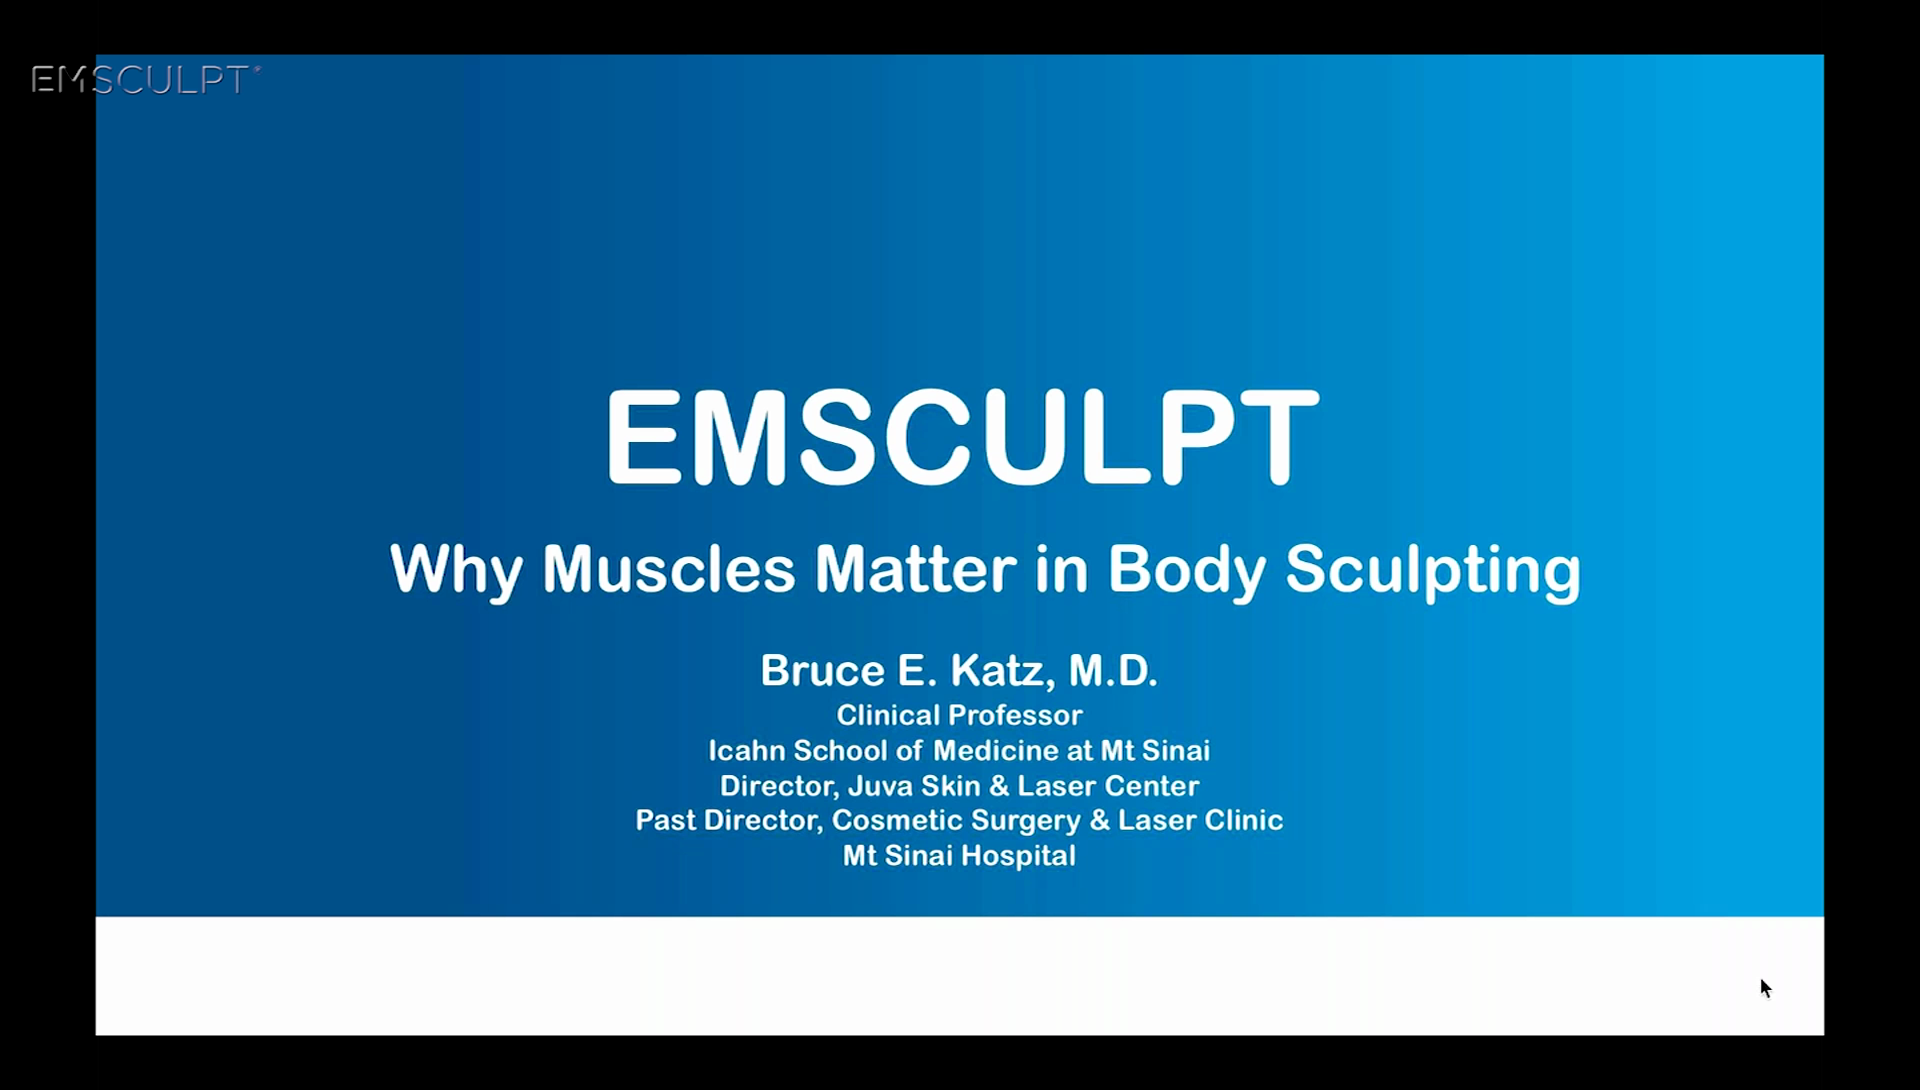 Emsculpt_VIDEO_Webinar-bruce-katz-md_ENUS100